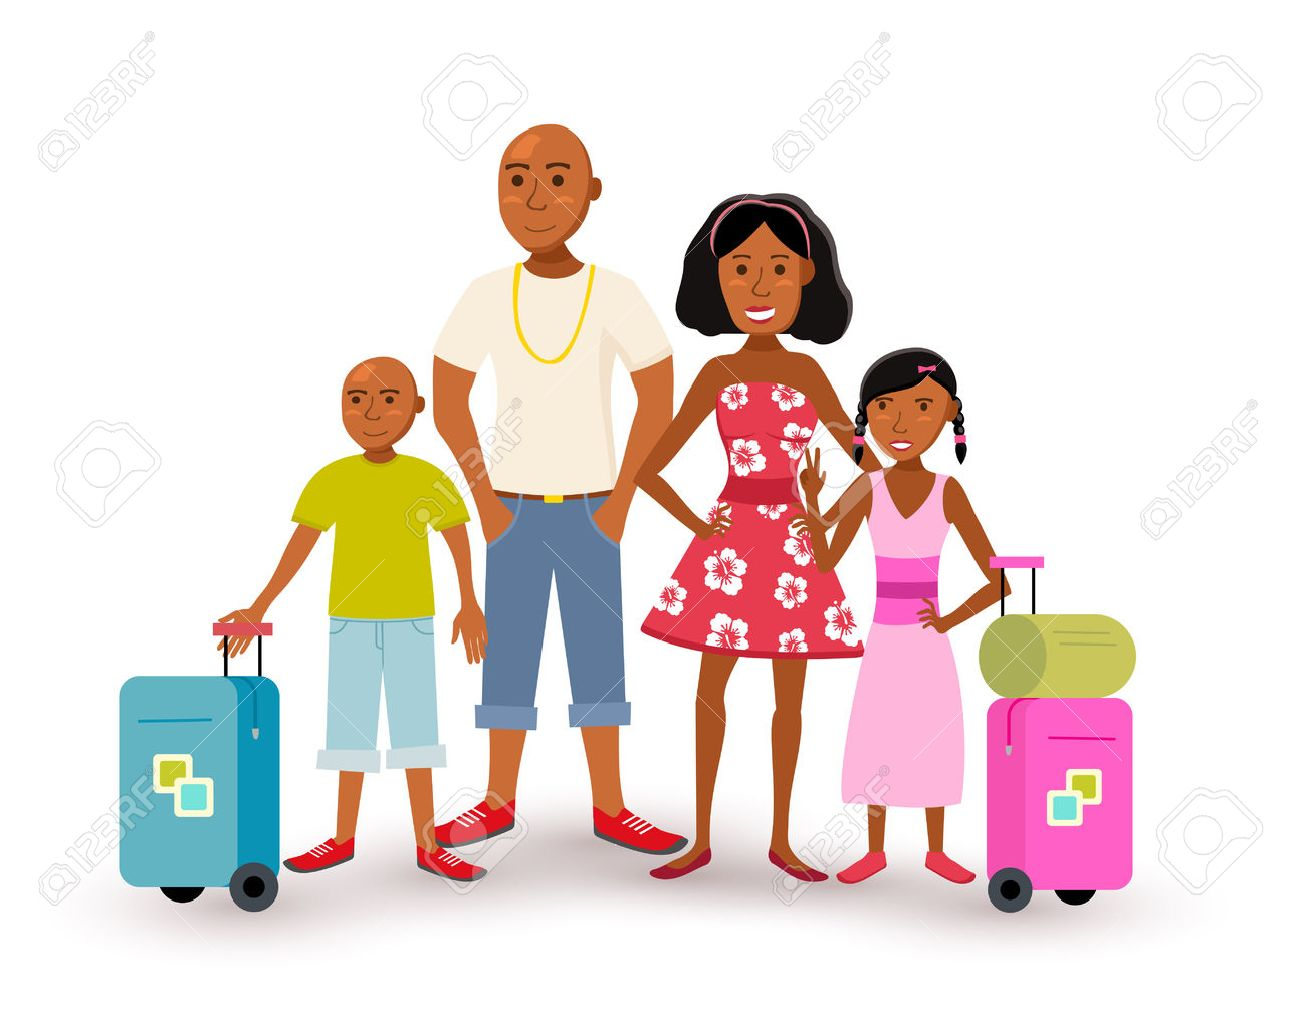 12 523 african american art cliparts stock vector and royalty free rh 123rf com african american family clipart african american family clipart